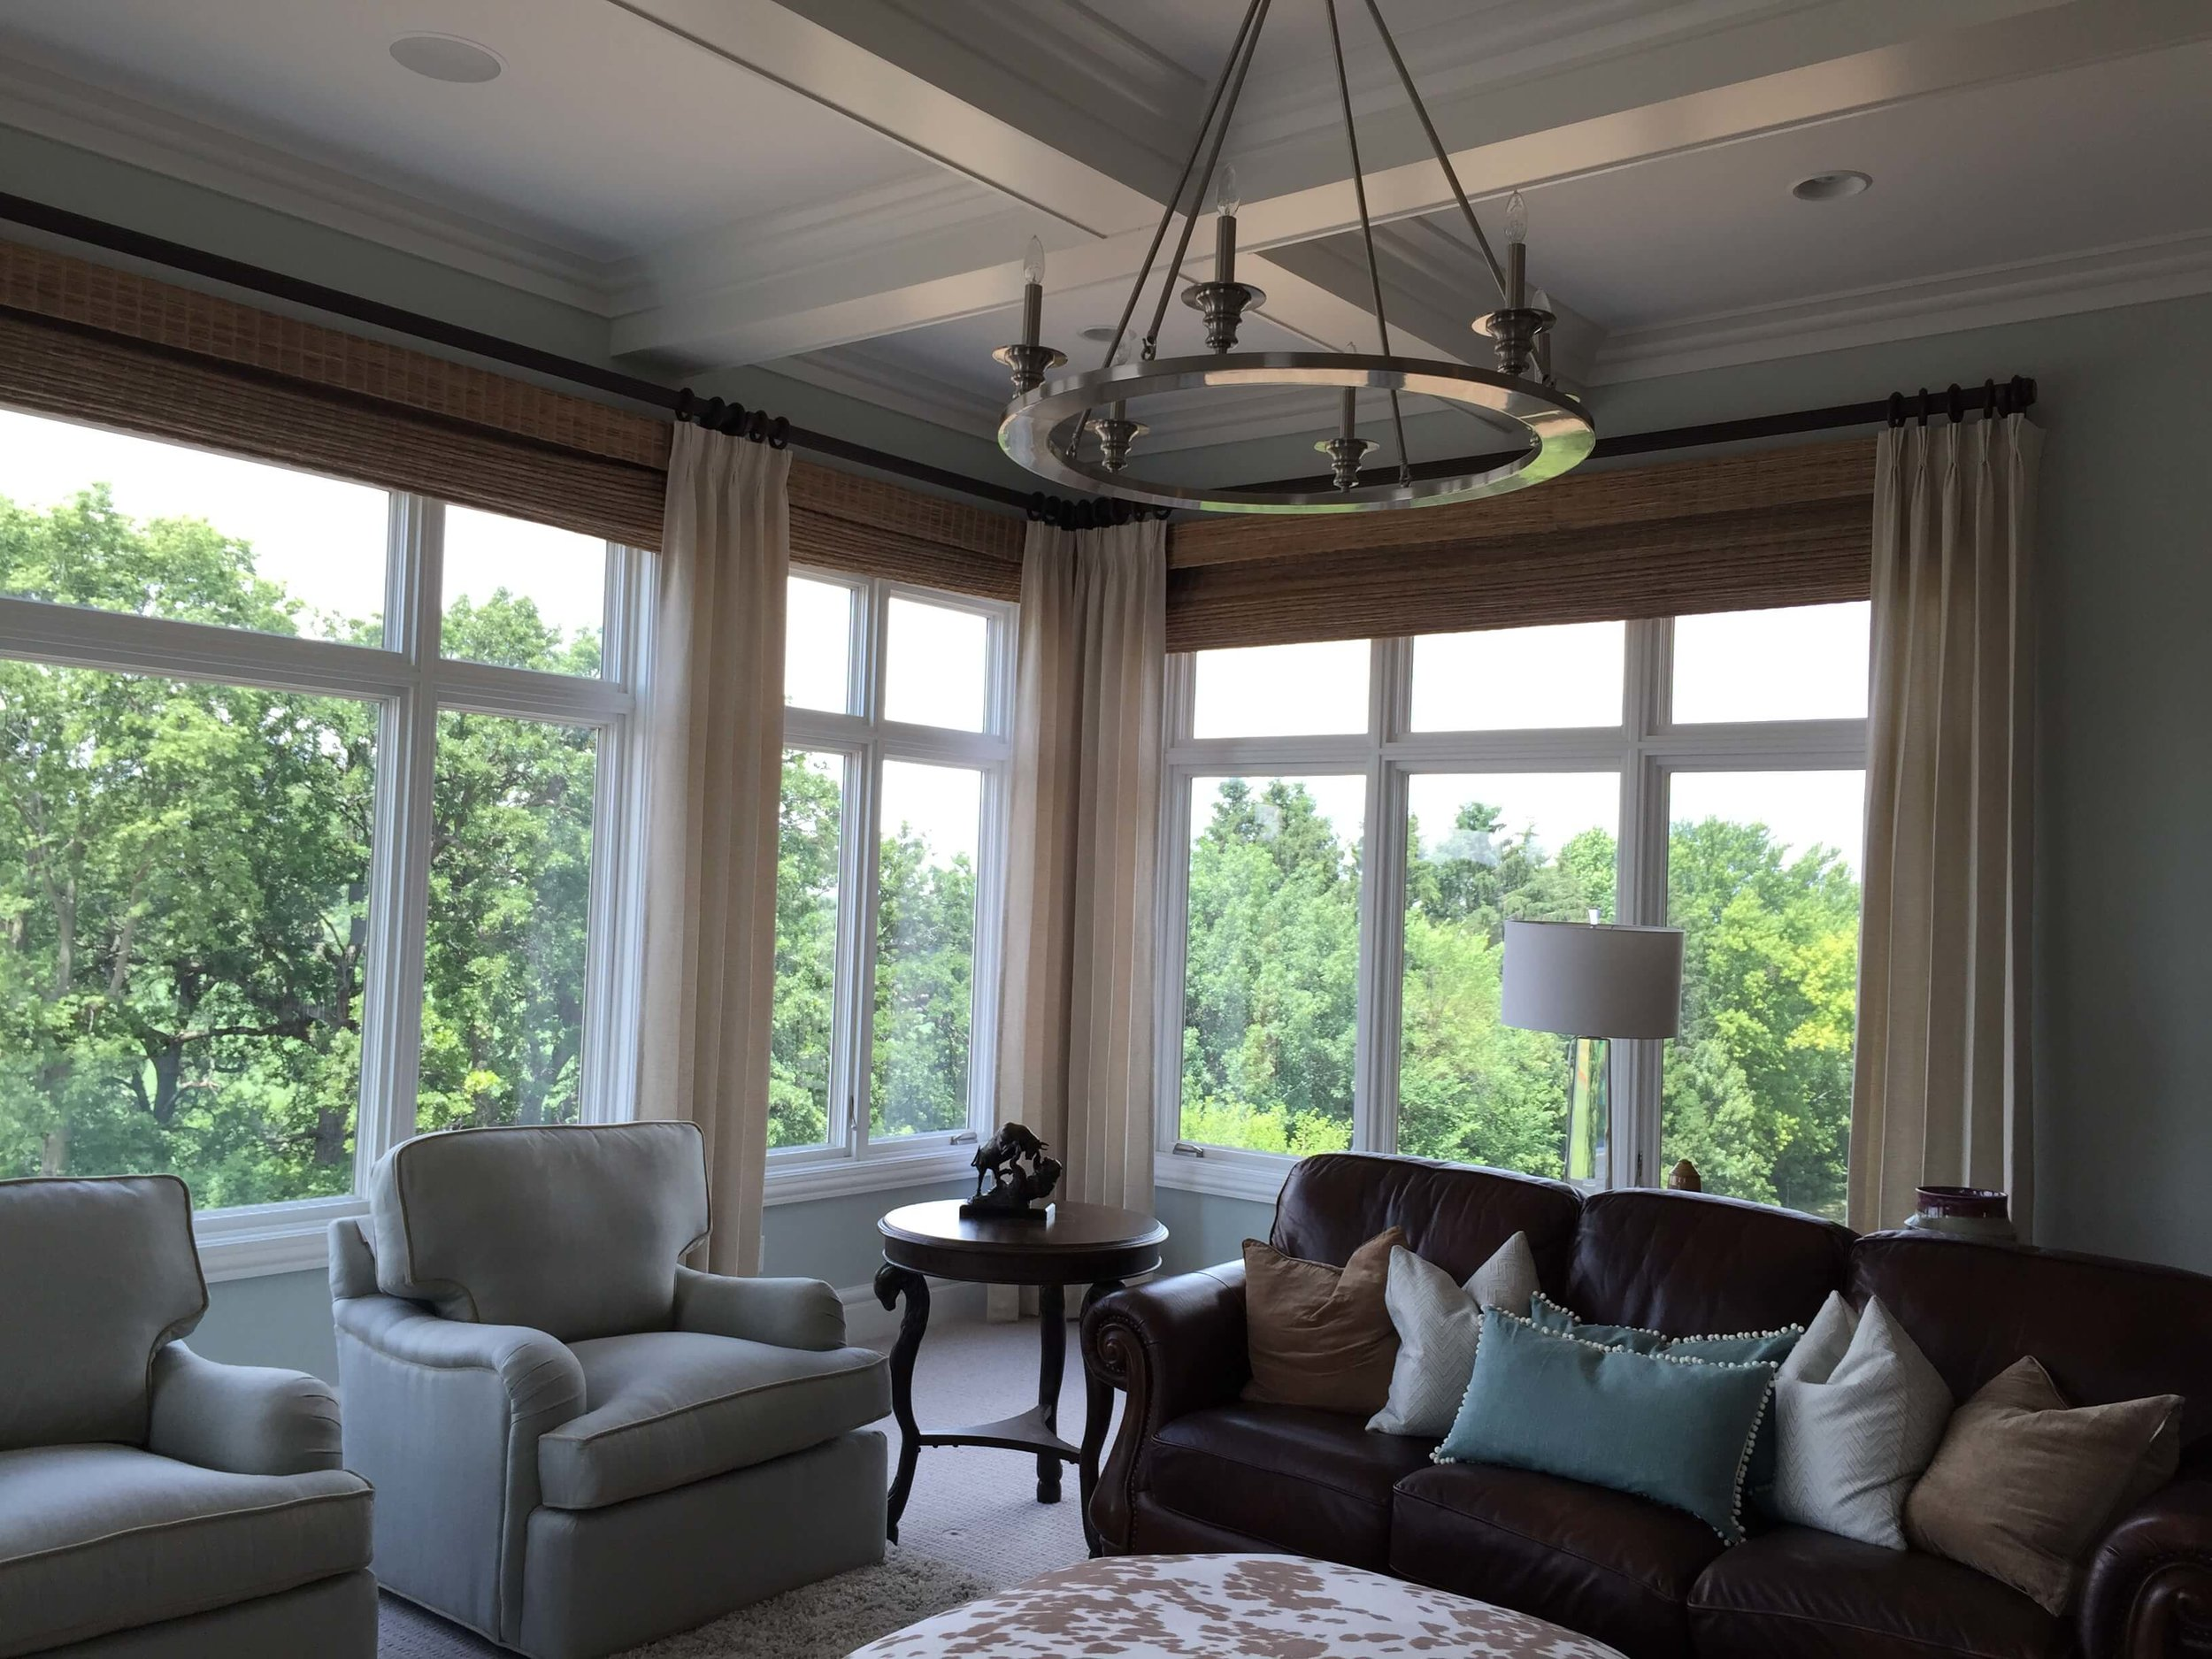 custom-window-treatments-verona-wisconsin-6.JPG